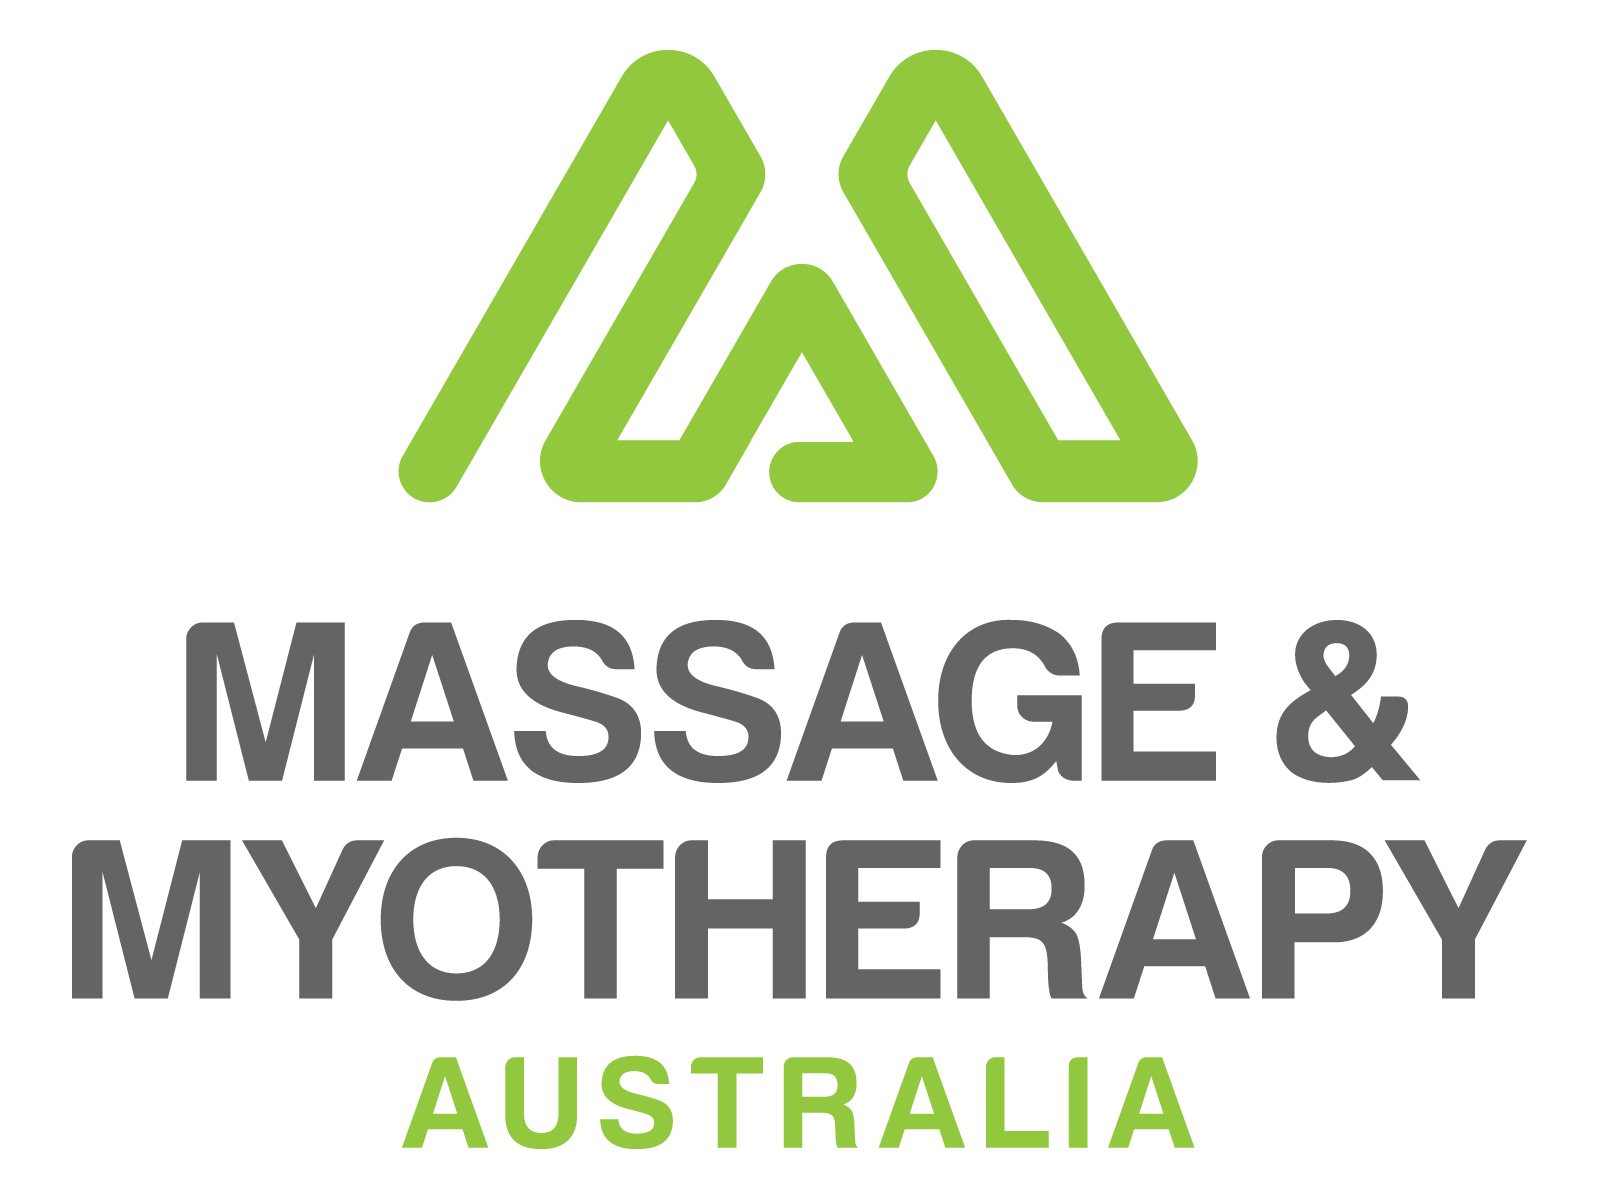 Massage  Myotherapy PRIMARY LOGO.jpg